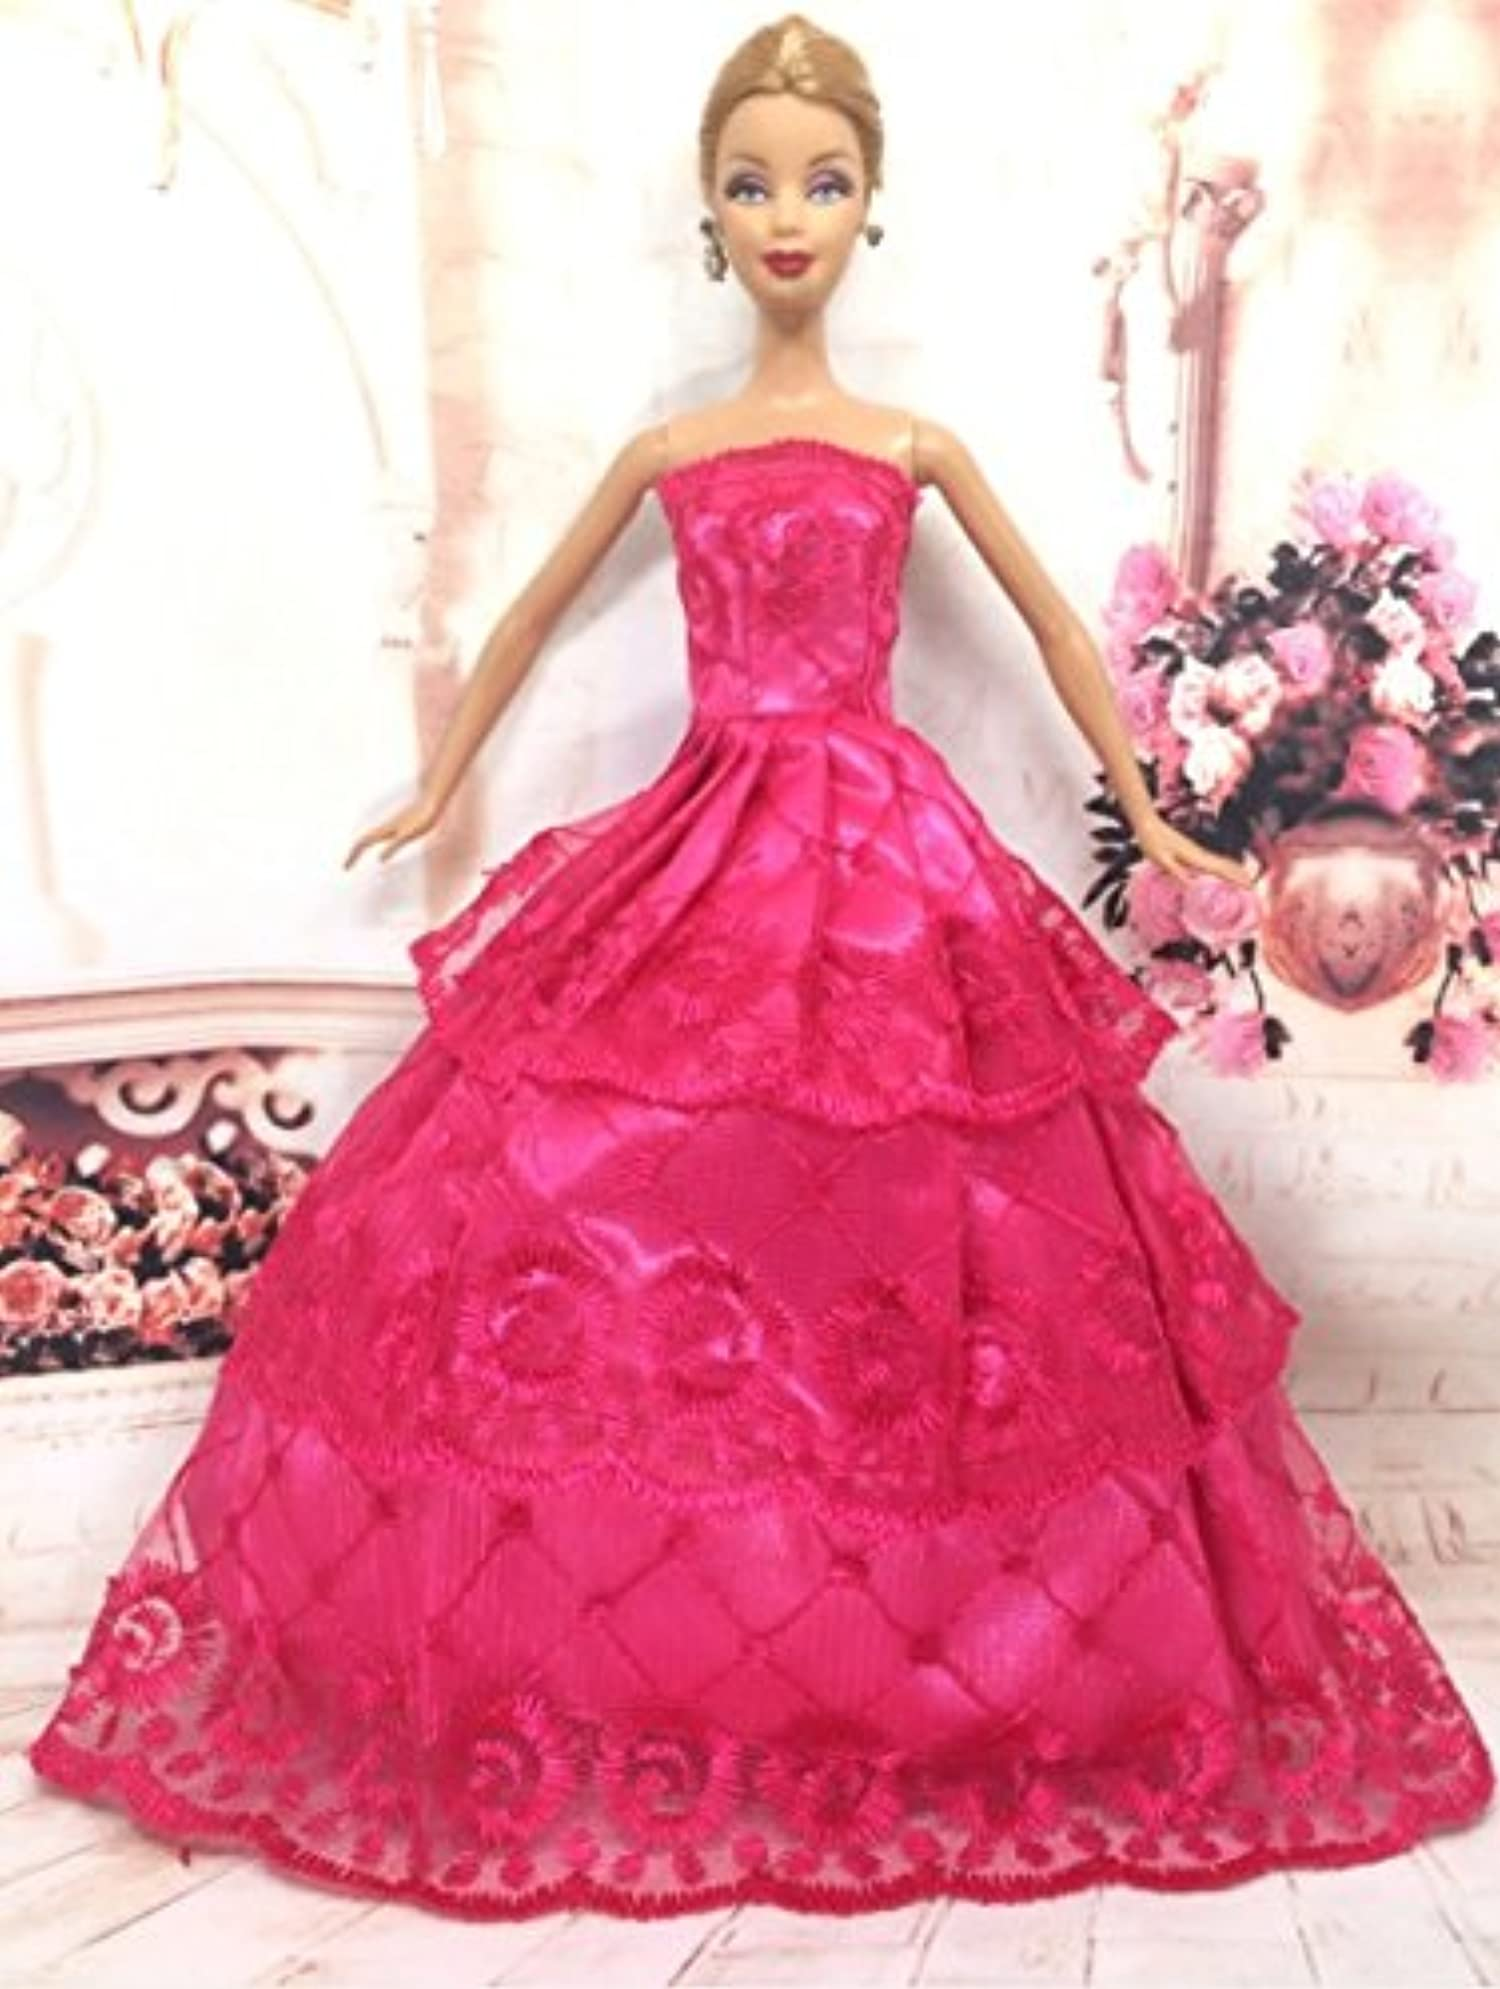 e Pcs Princess Doll Wedding Dress Noble Party Gown For